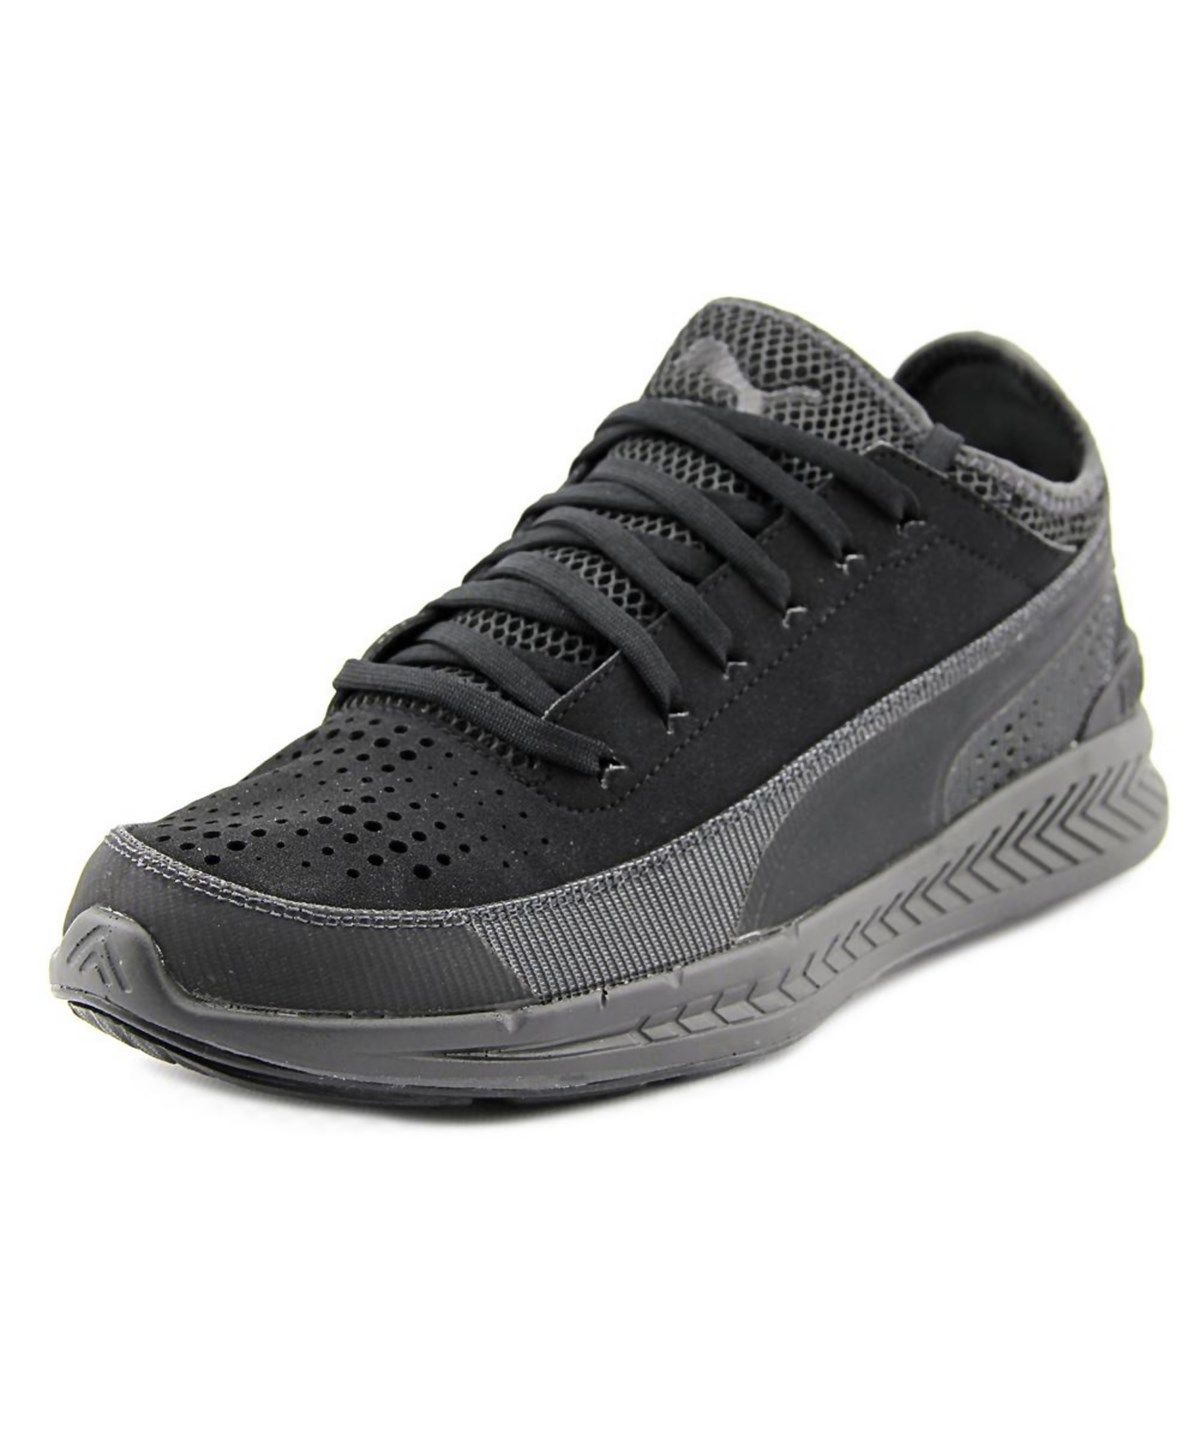 cheap puma shoes men s runners with socks and without socks